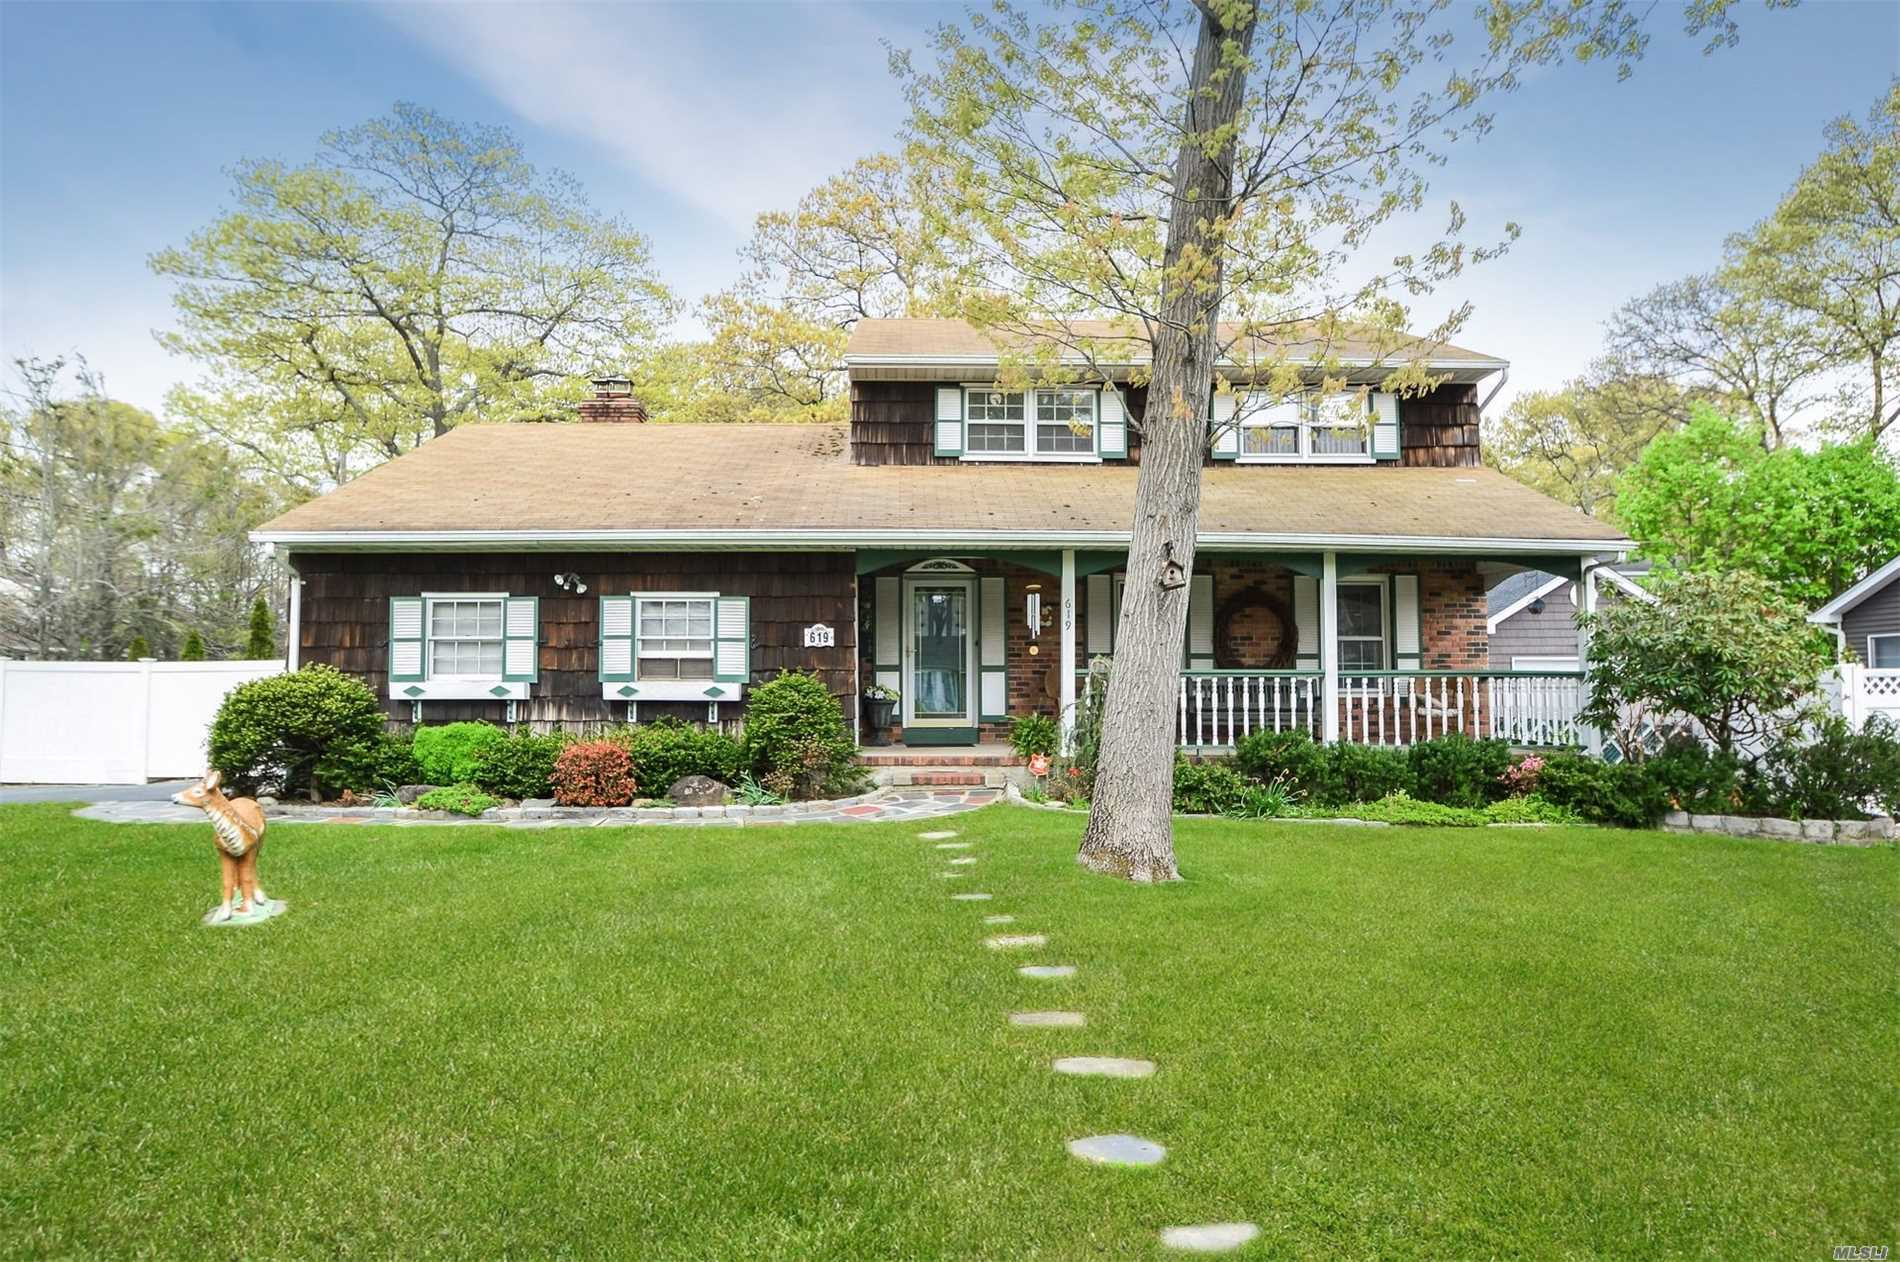 Beautiful True Center Hall Colonial Set On Large Park Like Grounds. Summer Time You Can Enjoy Entertaining On 2 Tier Deck And Relaxing On Your Front Porch. Winter You Can Snuggle Up In Front Of Your Fireplace.